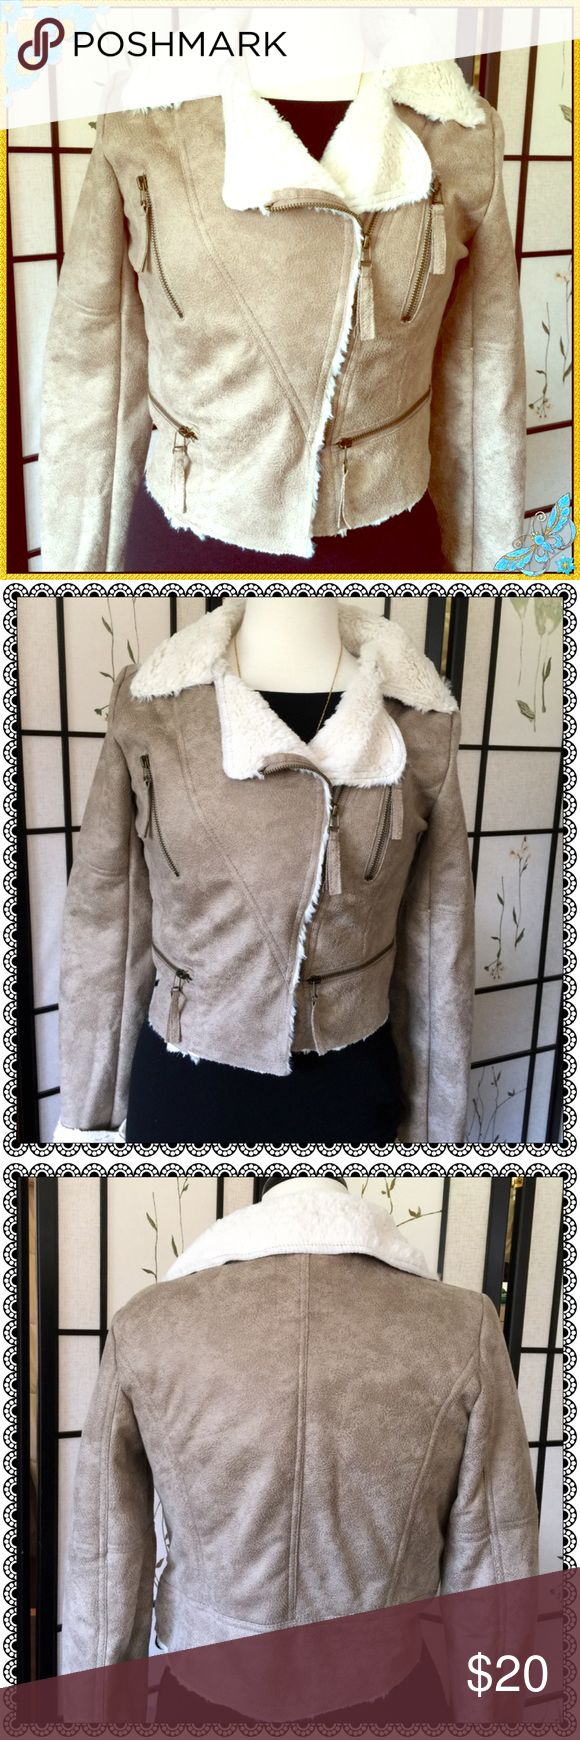 Urban Behavior Faux Suede/Shearling Bomber Jacket✨ Really Cute Faux Suede/Shearling Urban Behavior Bomber Jacket. Size is Medium but Runs Small. Fits more like a Small. Excellent Condition! ✨Like New!!✨ Urban Behavior Jackets & Coats